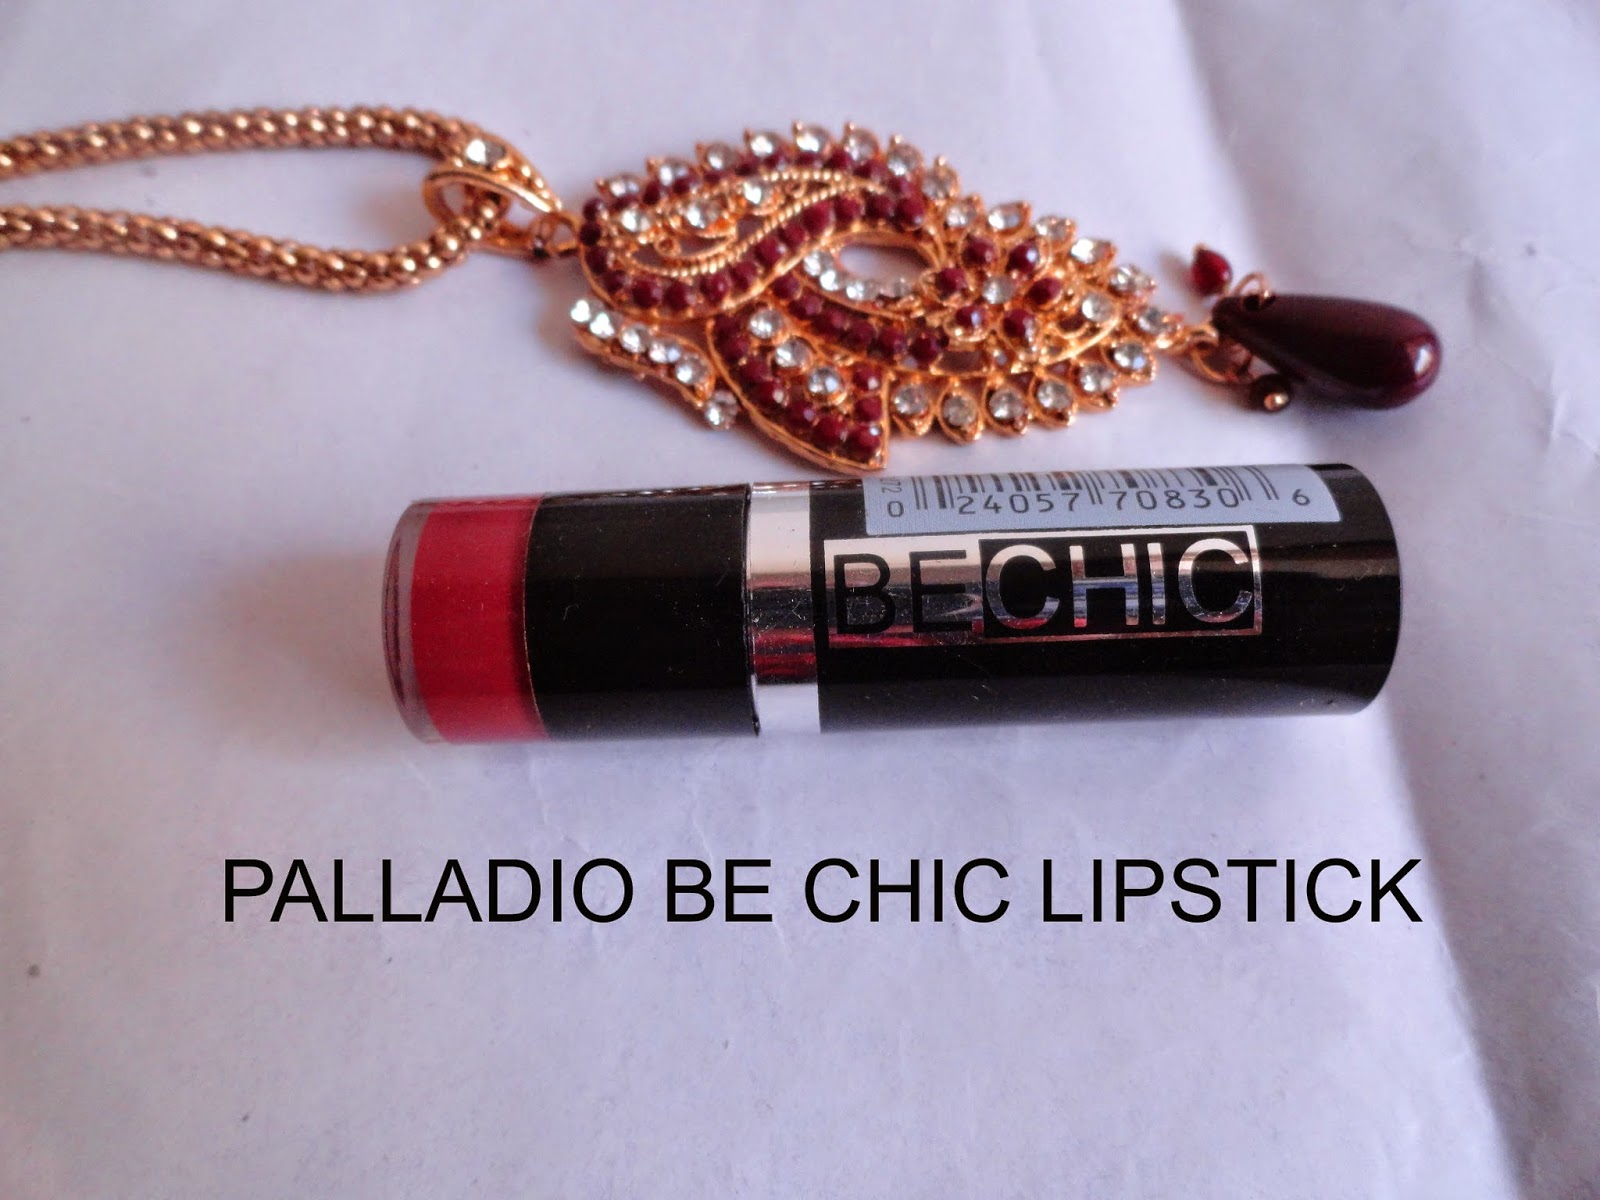 REVIEW: Palladio Be Chic Lipstick in Merlot. image